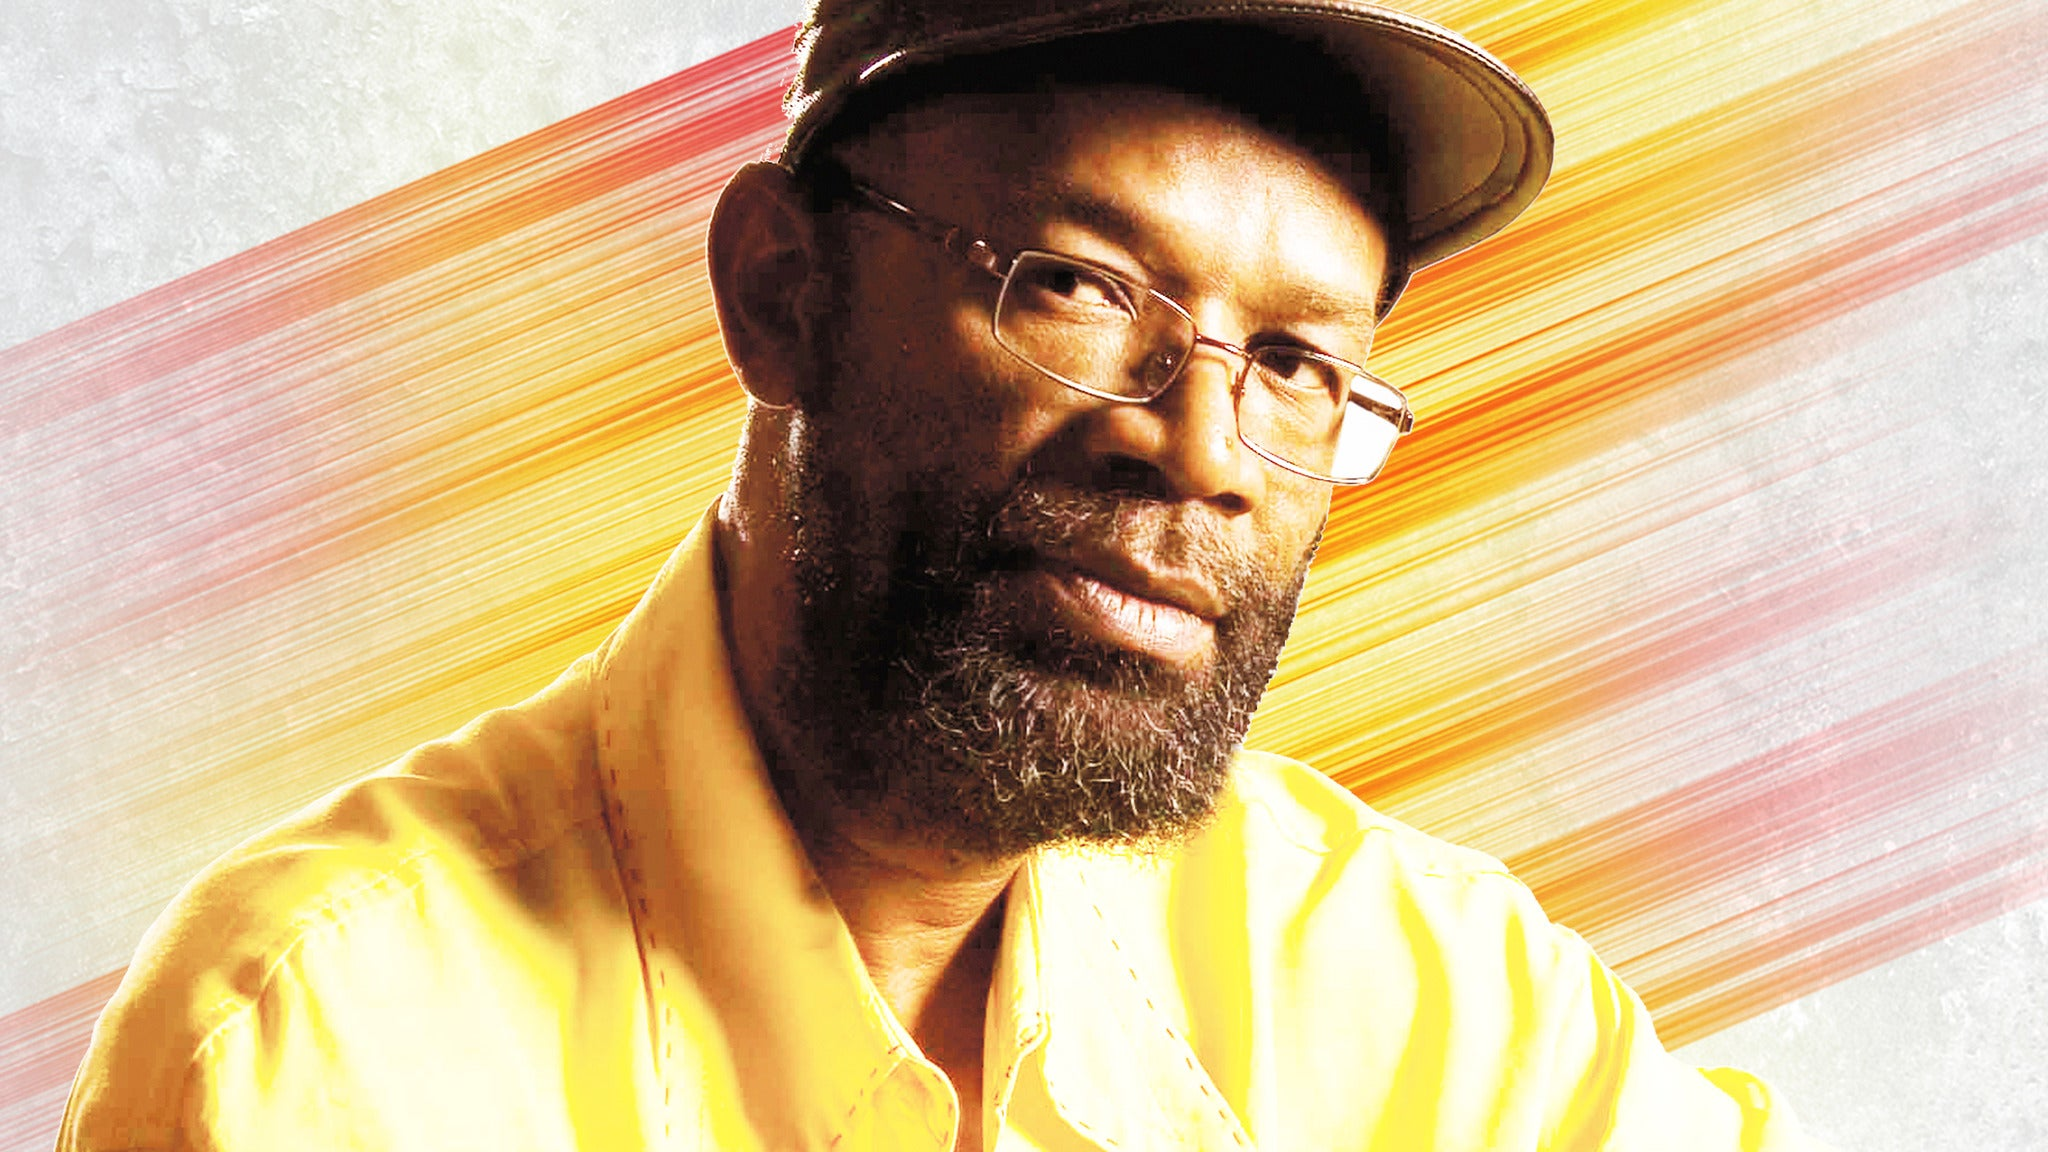 Beres Hammond - Take Time To Love Tour 2017